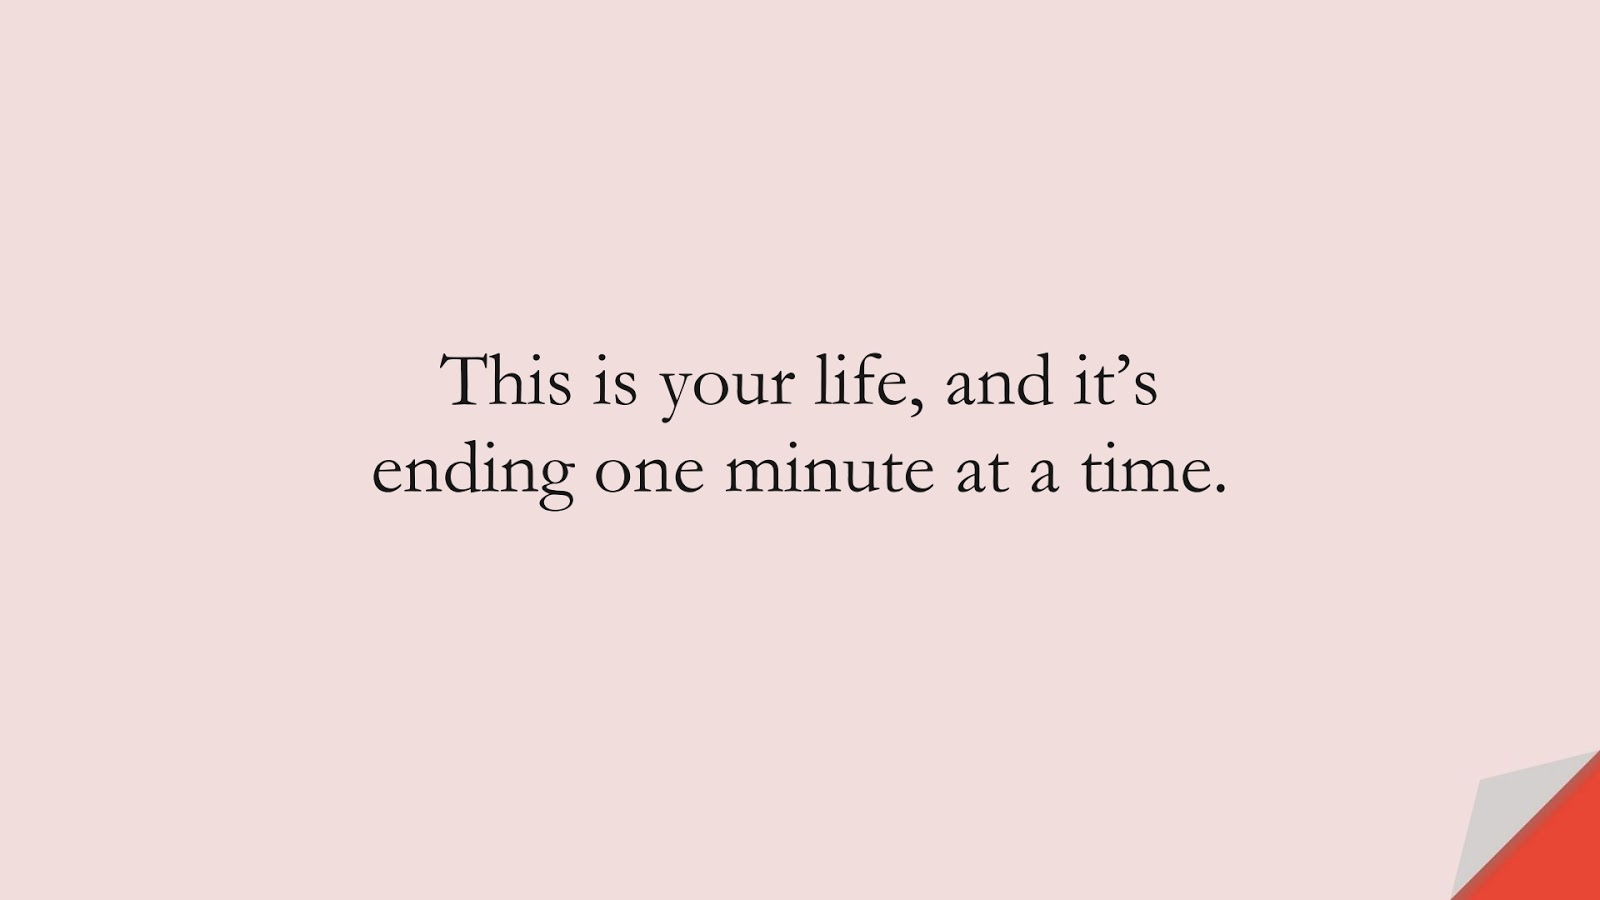 This is your life, and it's ending one minute at a time.FALSE